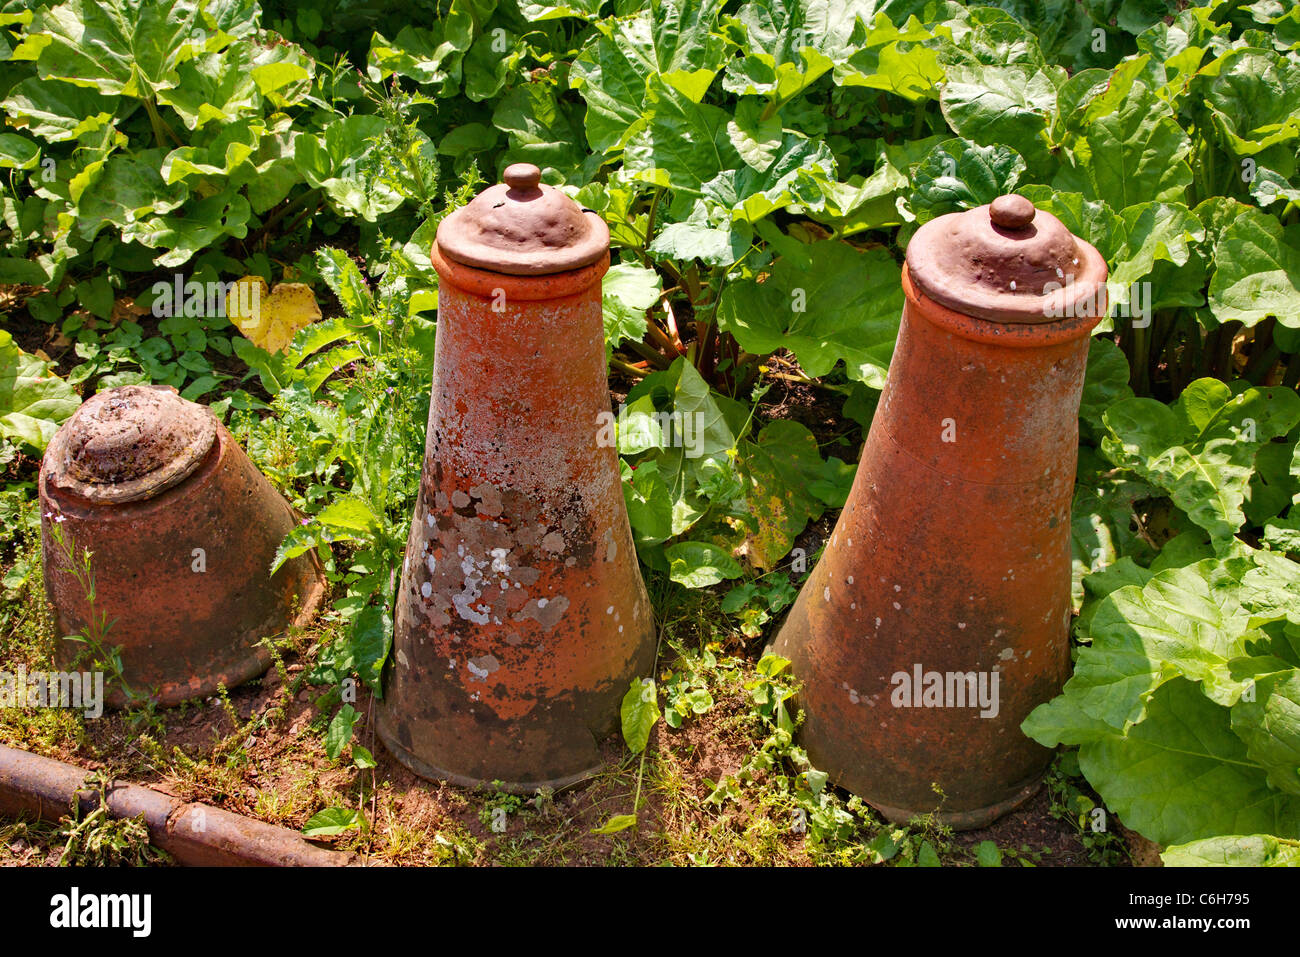 Red earthenware lidded cloches in a kitchen garden - used for forcing celery or leeks - Stock Image